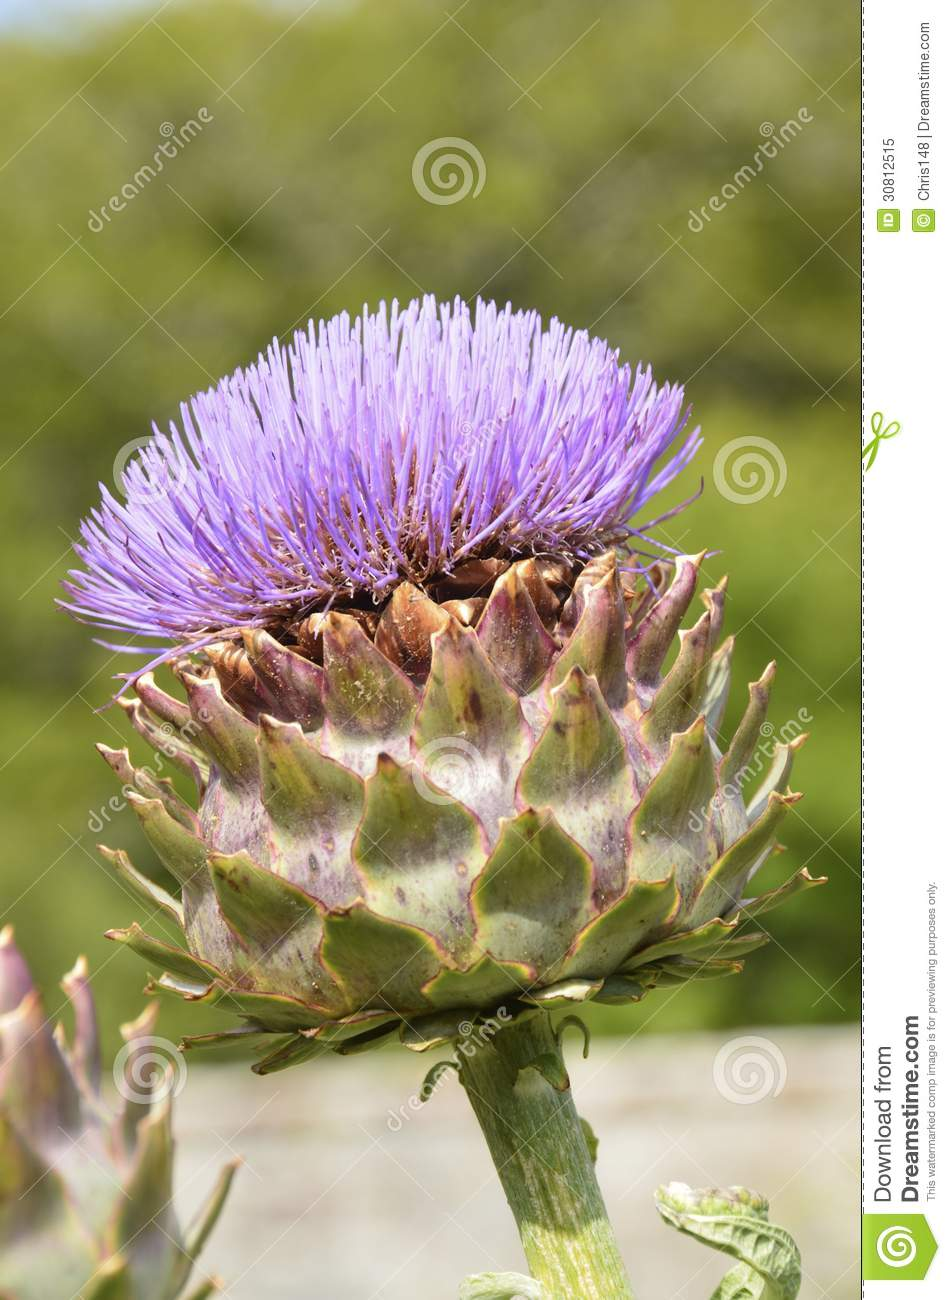 giant ornamental scottish thistle royalty free stock photo image